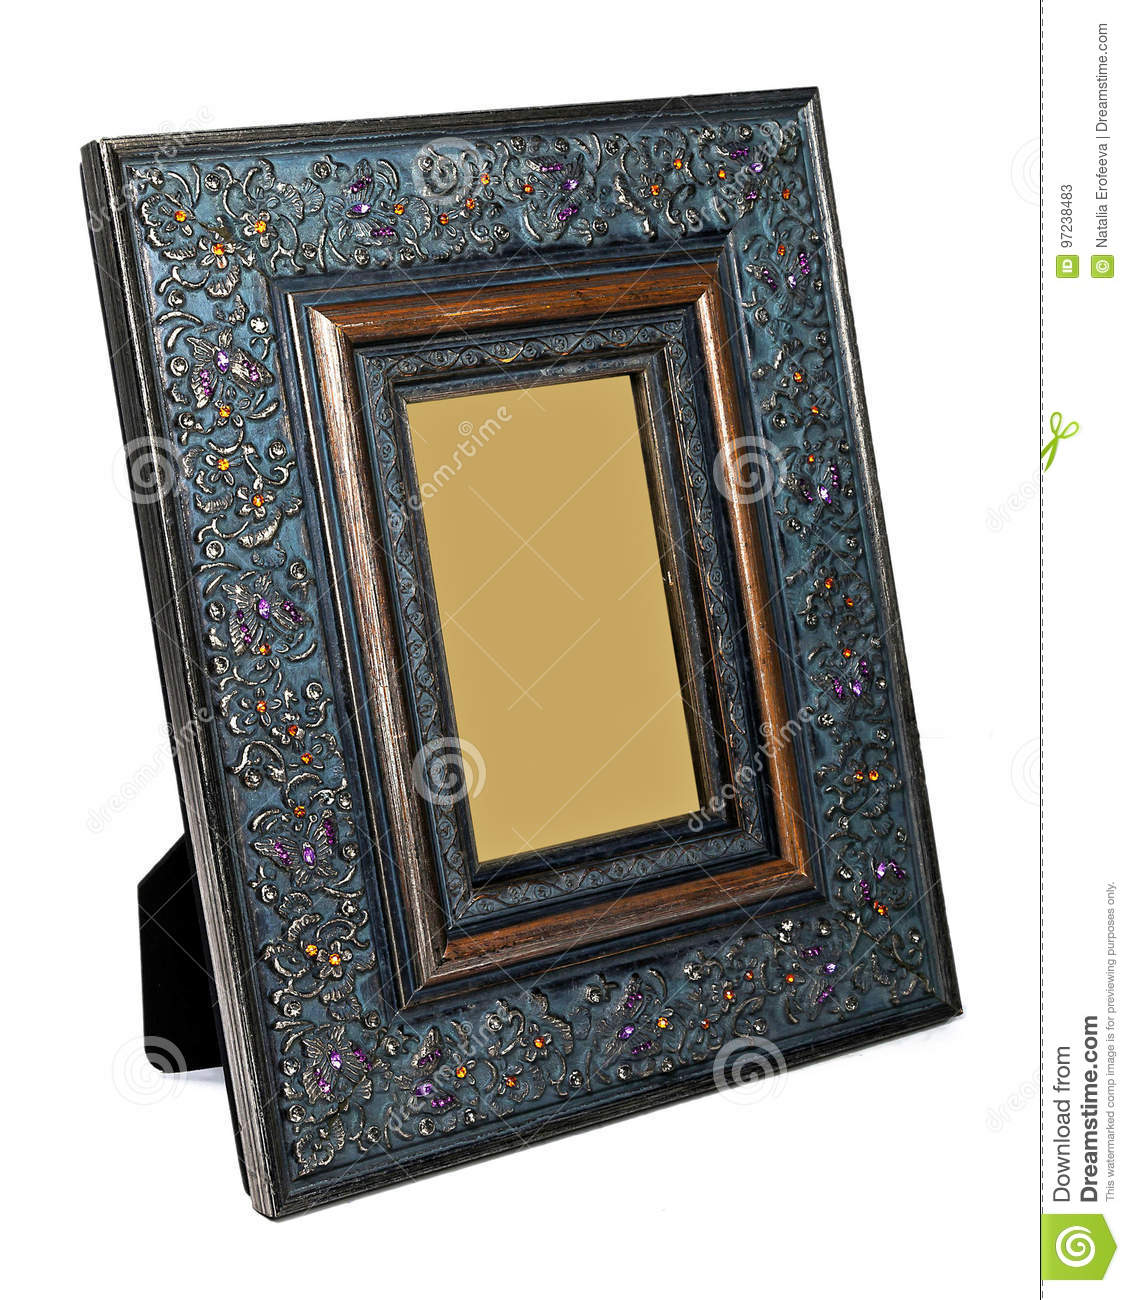 Antique wooden photo frame isolated on white background